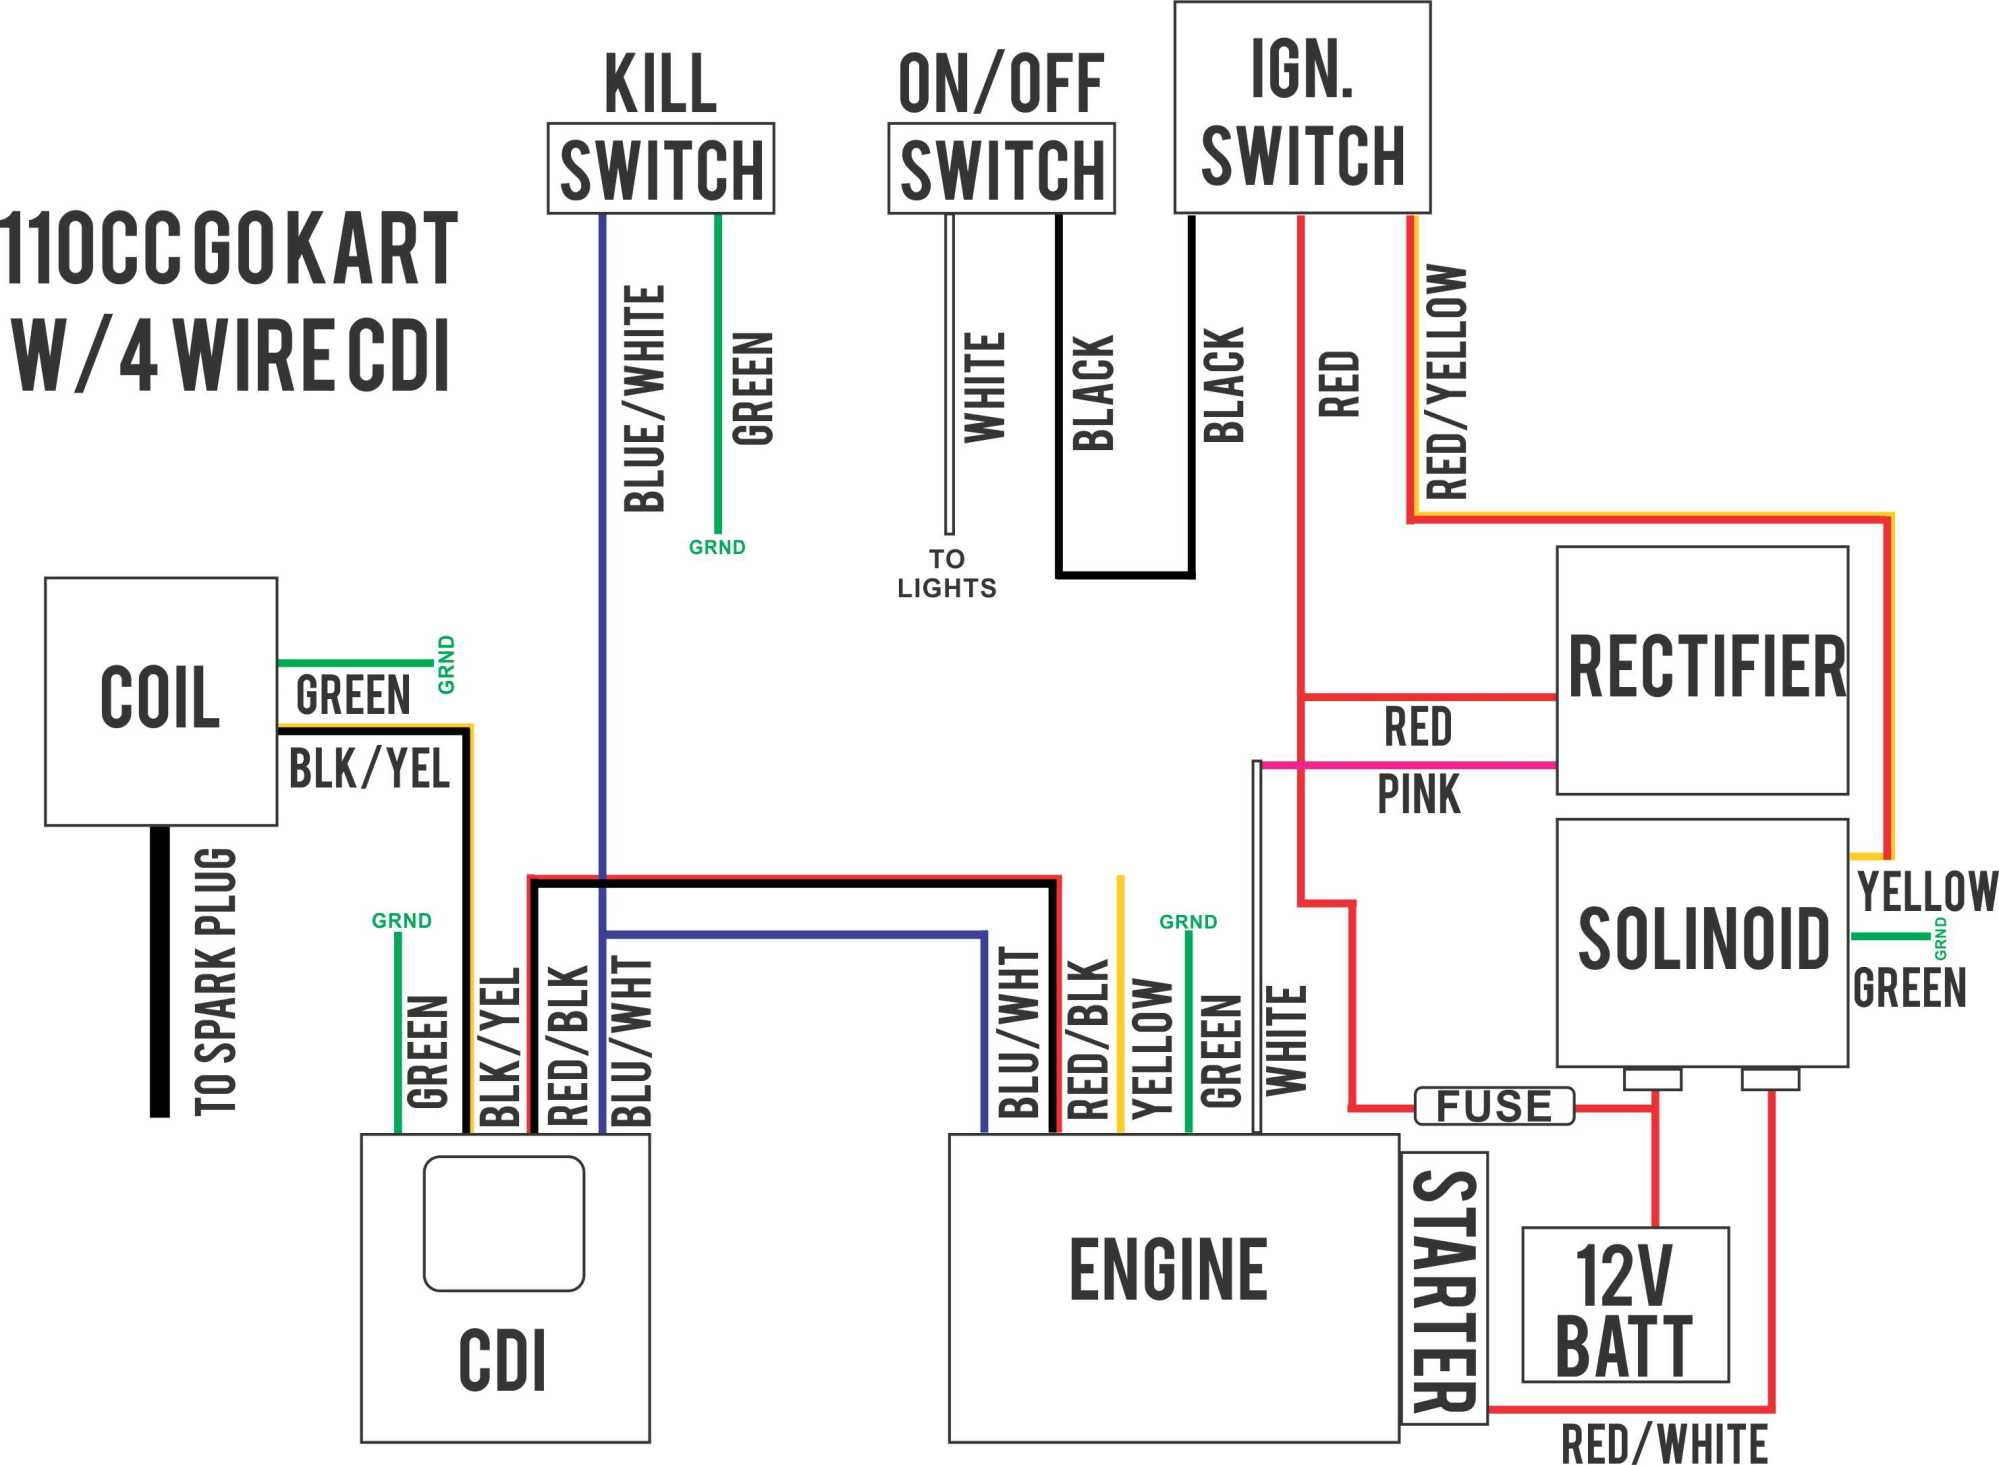 hight resolution of 49cc engine wiring diagram wiring diagram blogs terminator scooter wiring diagram 49cc 2 stroke wiring diagram